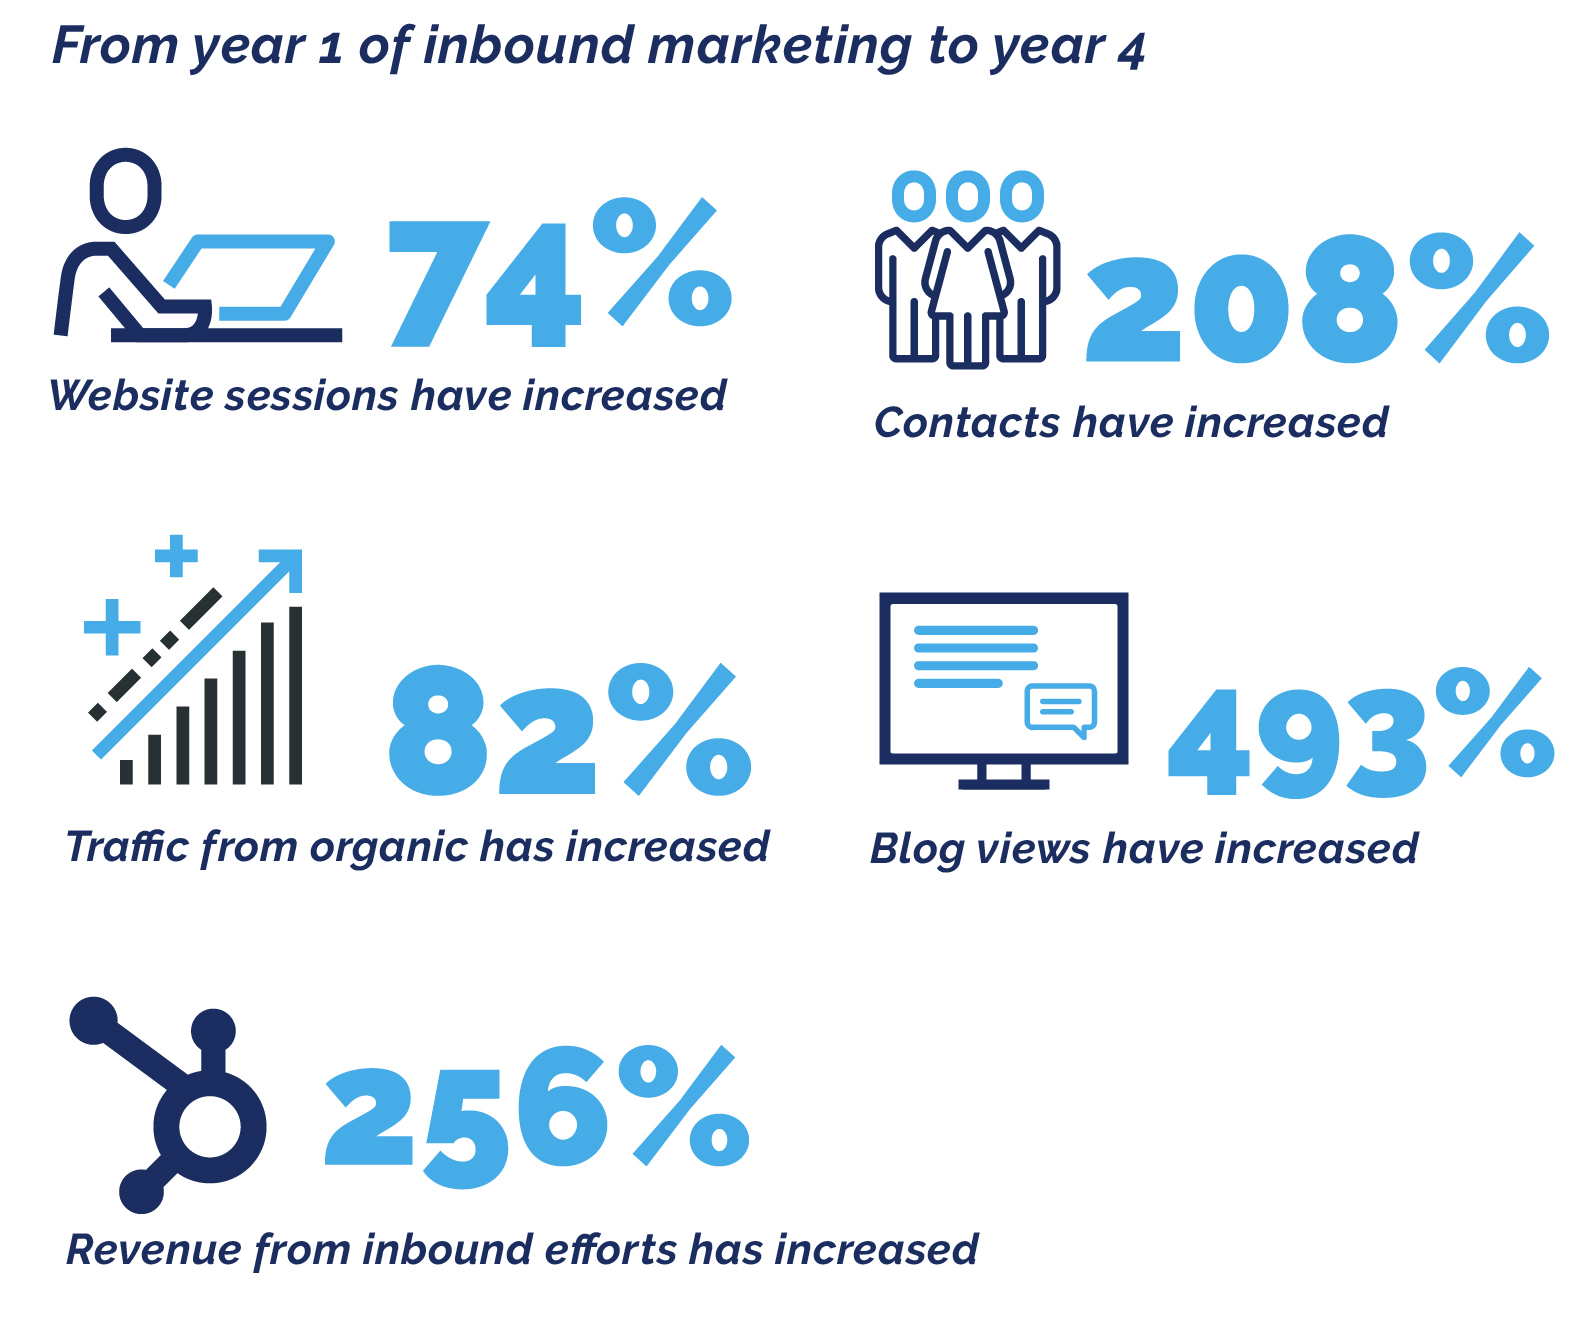 Year 1 to Year 4  of Inbound Marketing Metrics